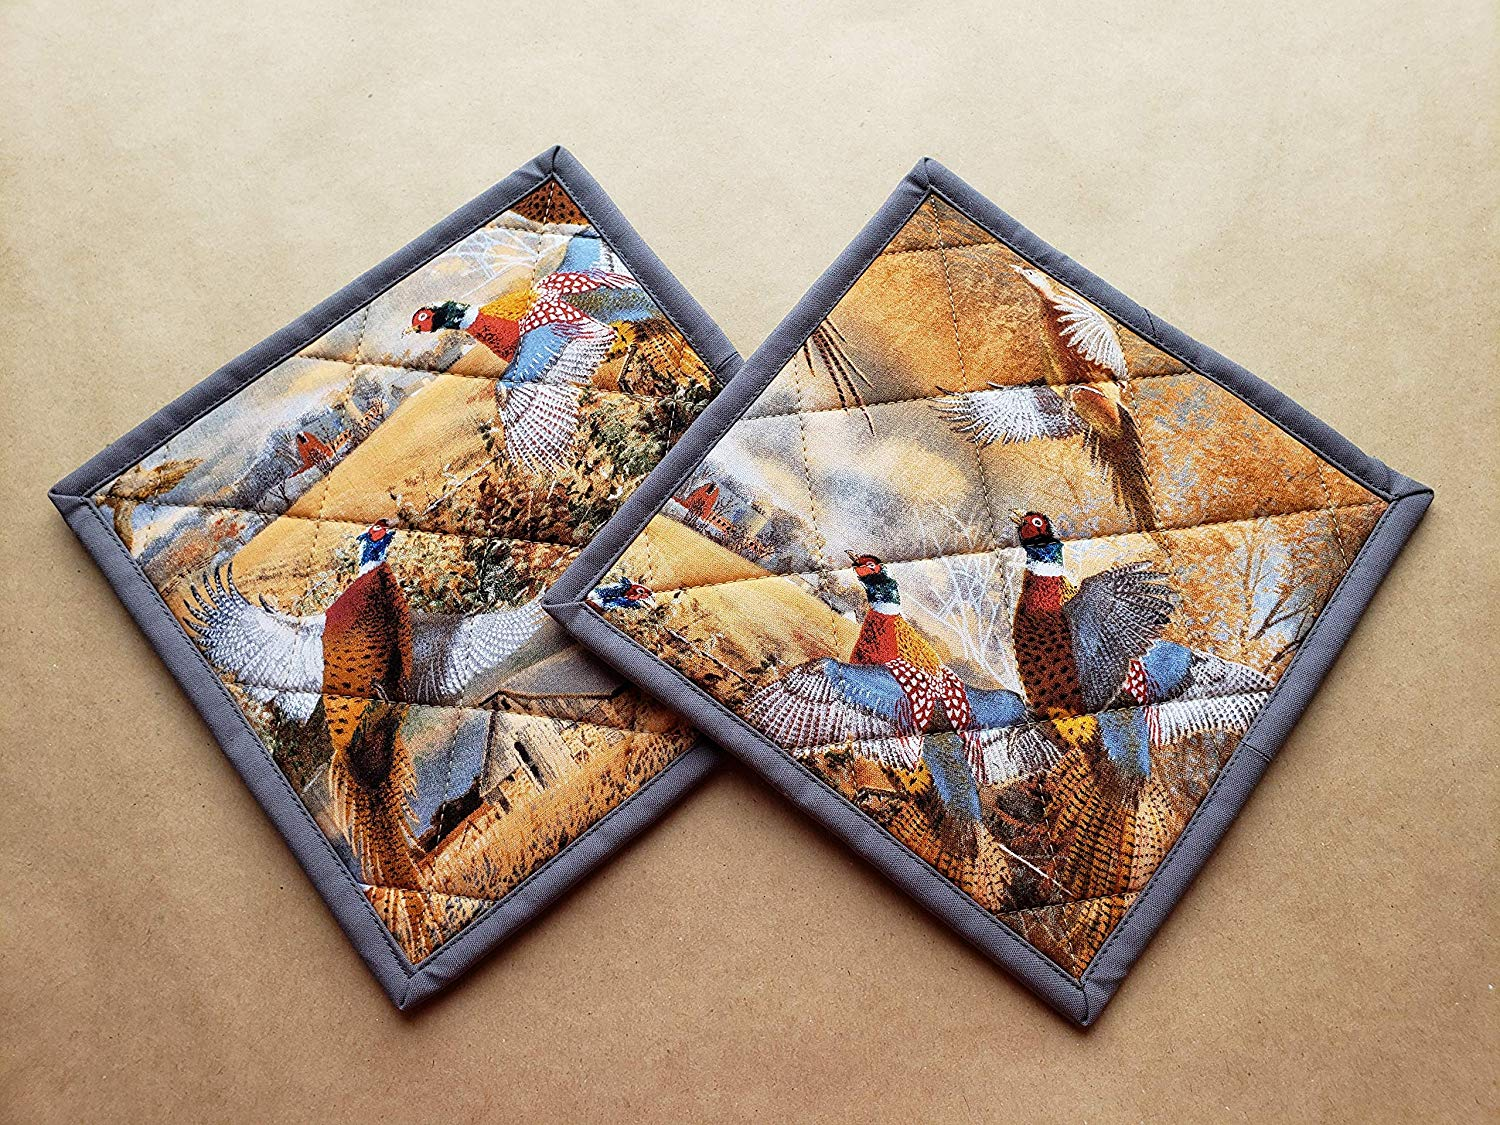 Ring Necked Pheasant Quilted Potholders, Hunting, Set of 2 Insulated Trivets, Hot Pads, Game Birds, Wheat Farmer Kitchen Linens, Gifts Under 20, FFA, 4H, Hunt Club, Barn, Pair of Farm Pot Holders